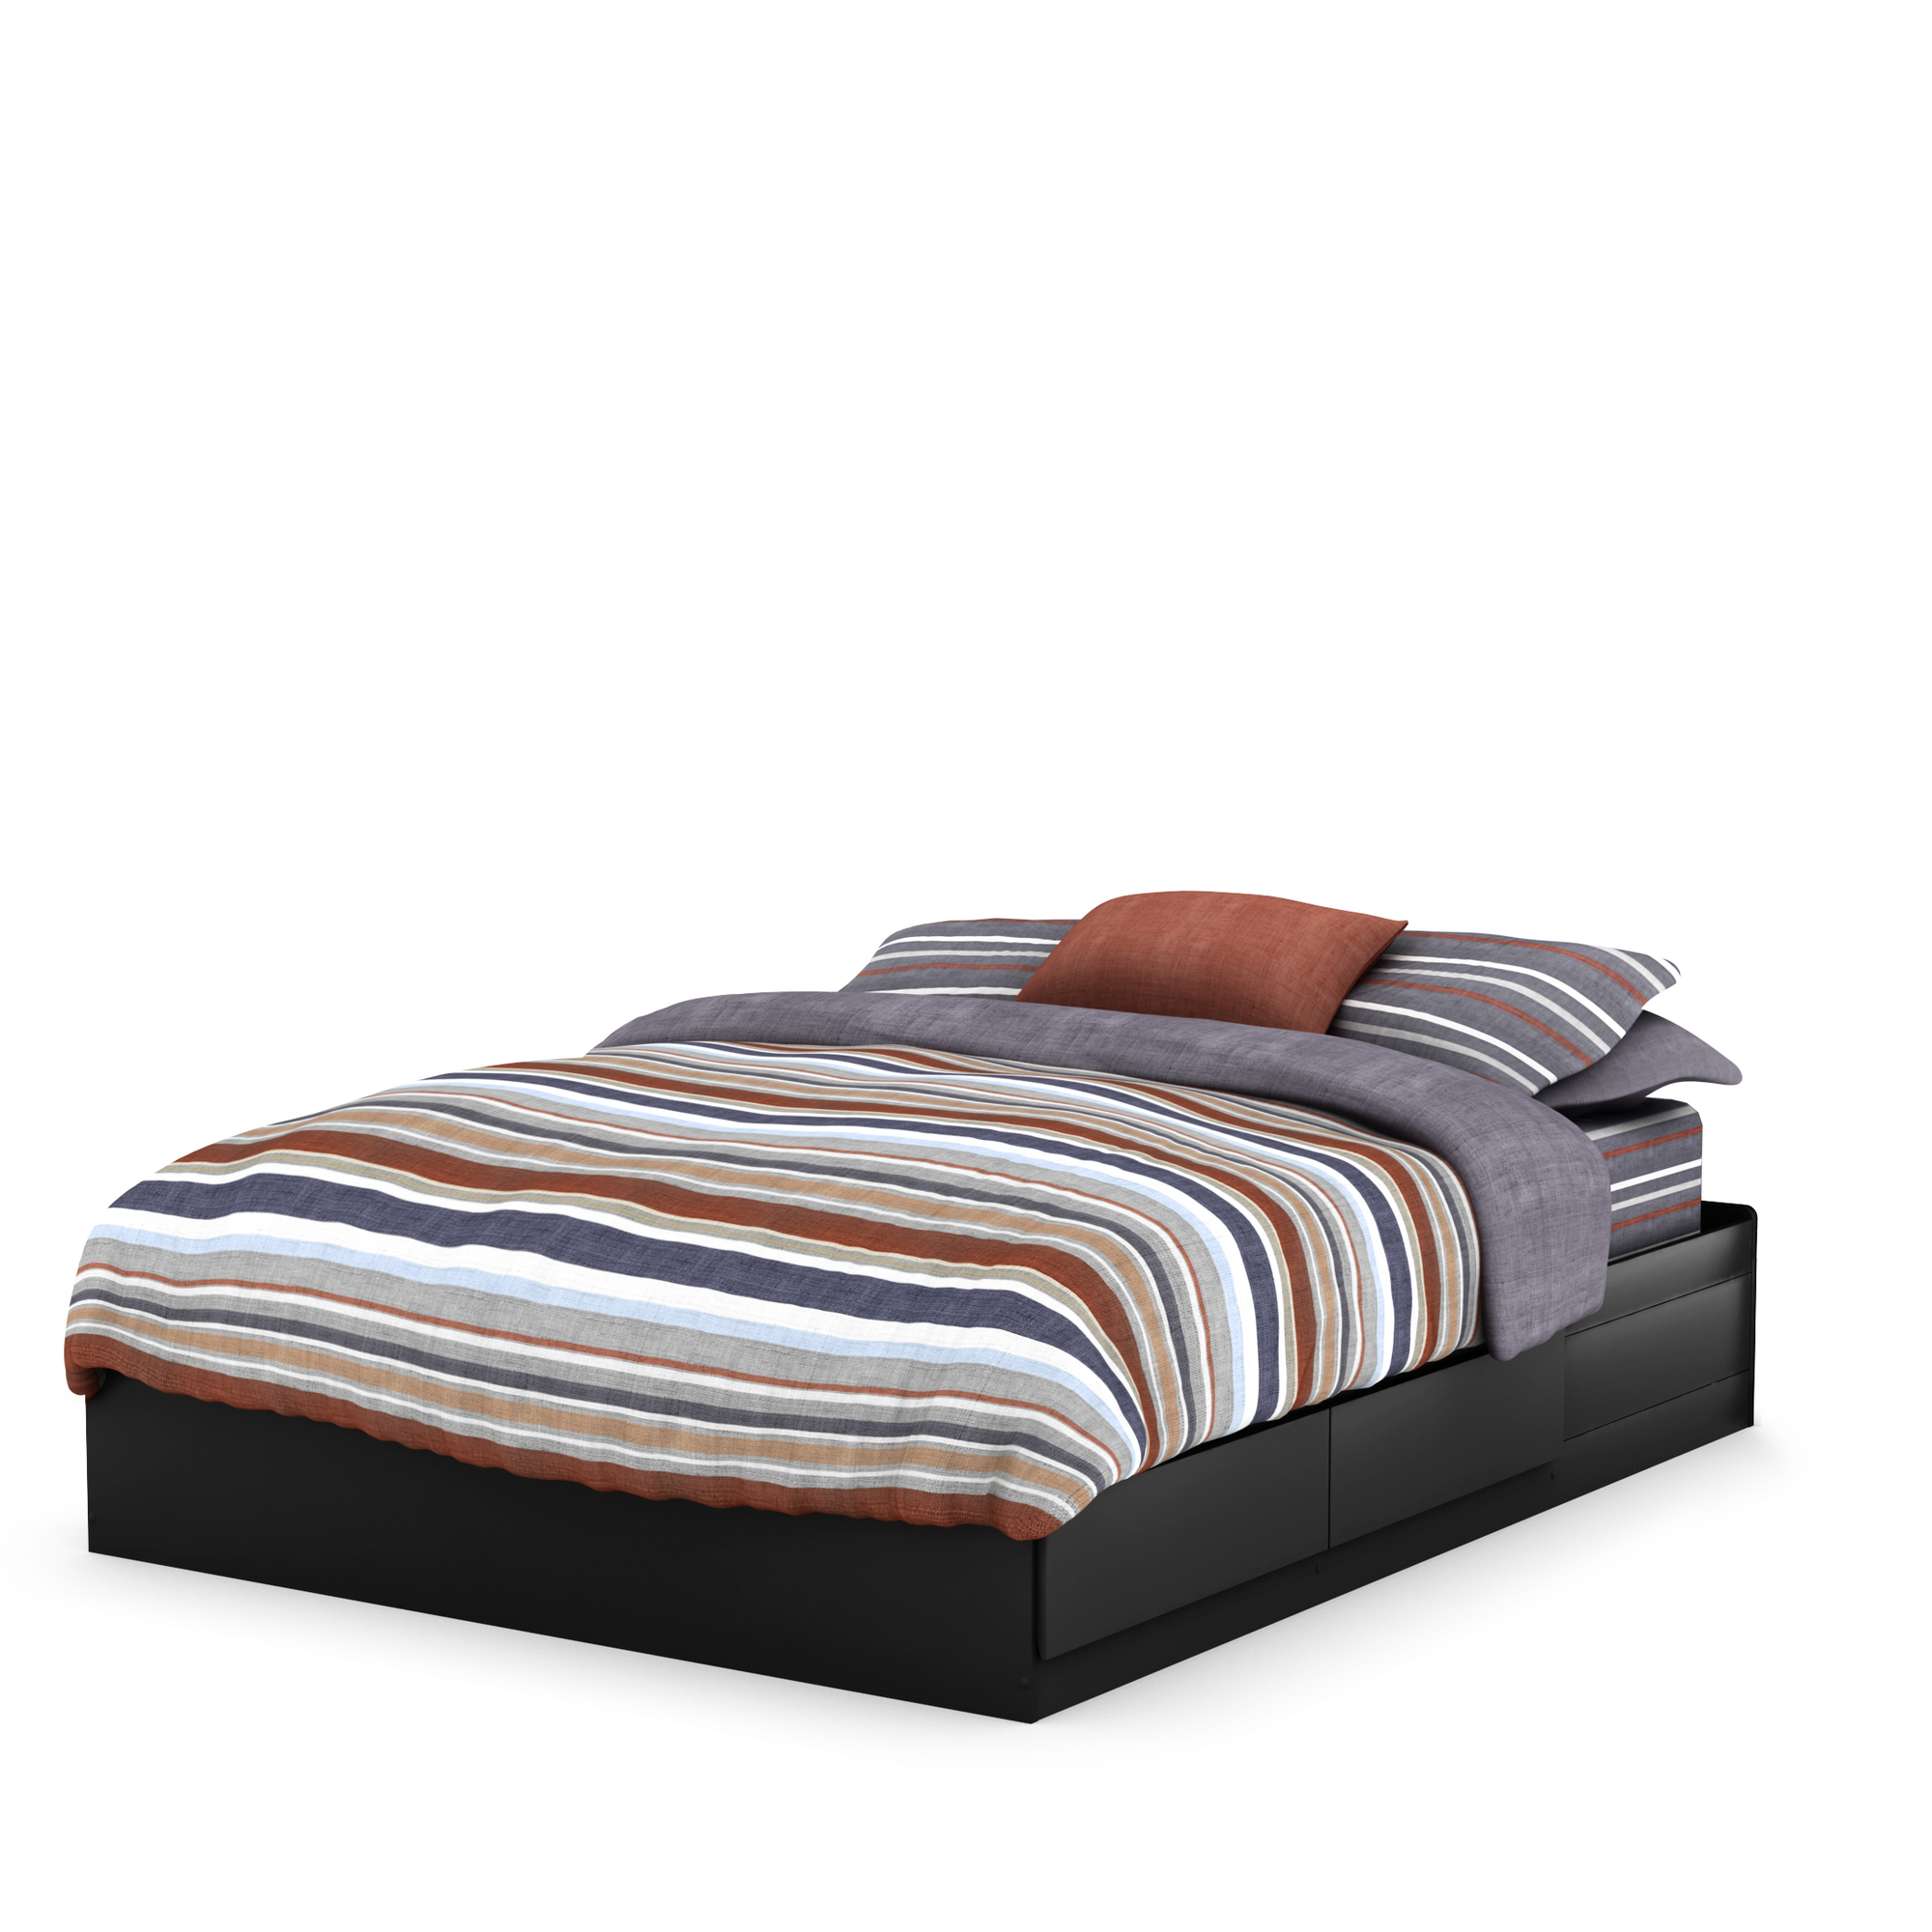 South Shore Fusion Queen Mates Bed (60''), Multiple Finishes